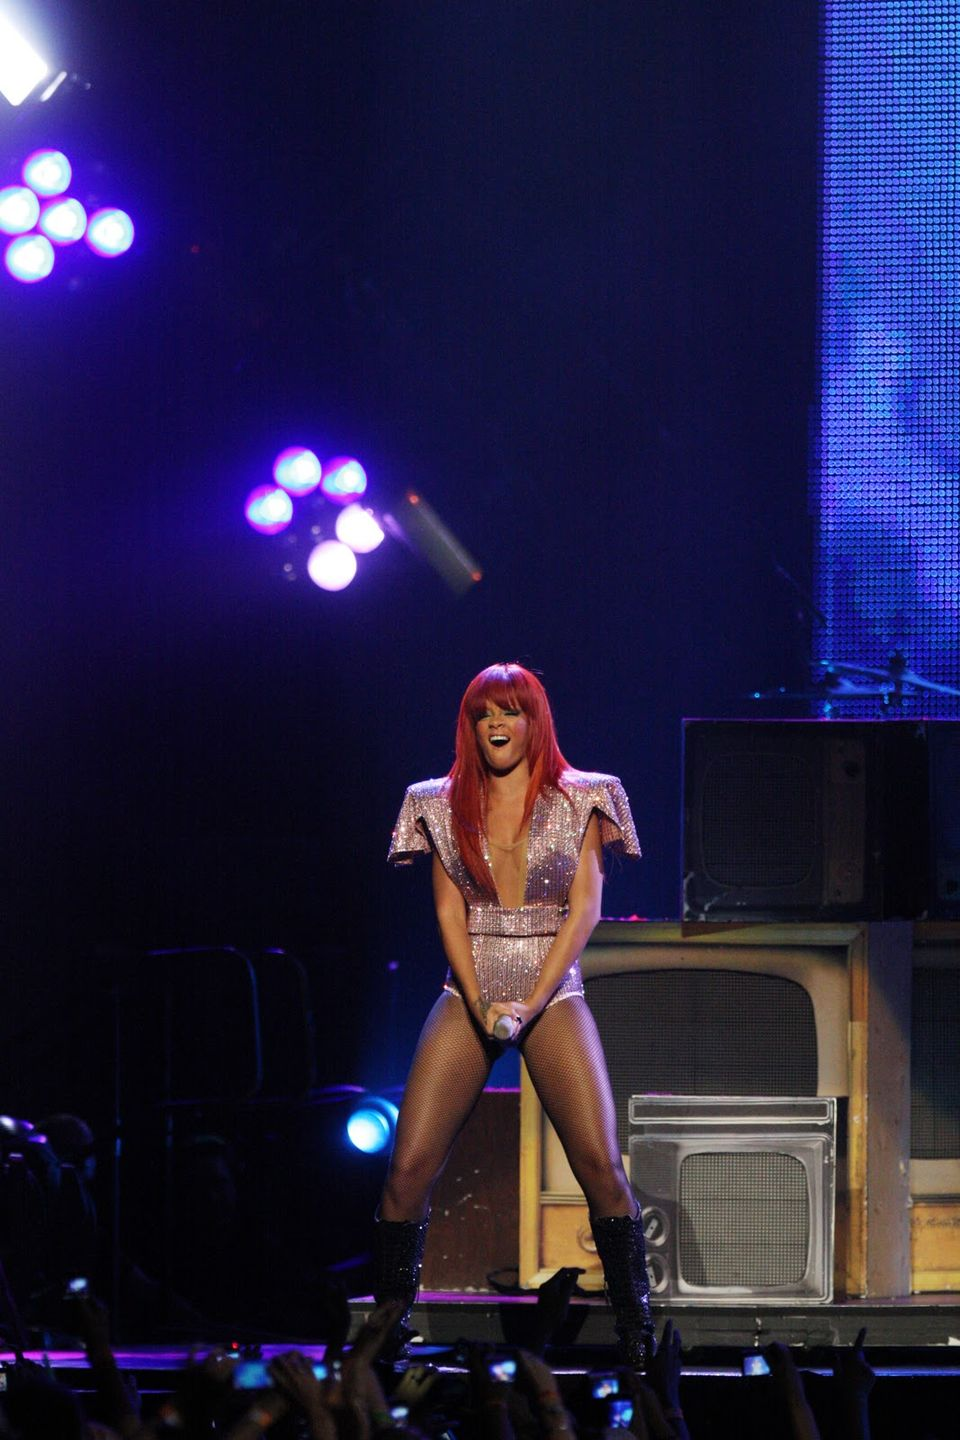 Rihanna warms up Sydney for